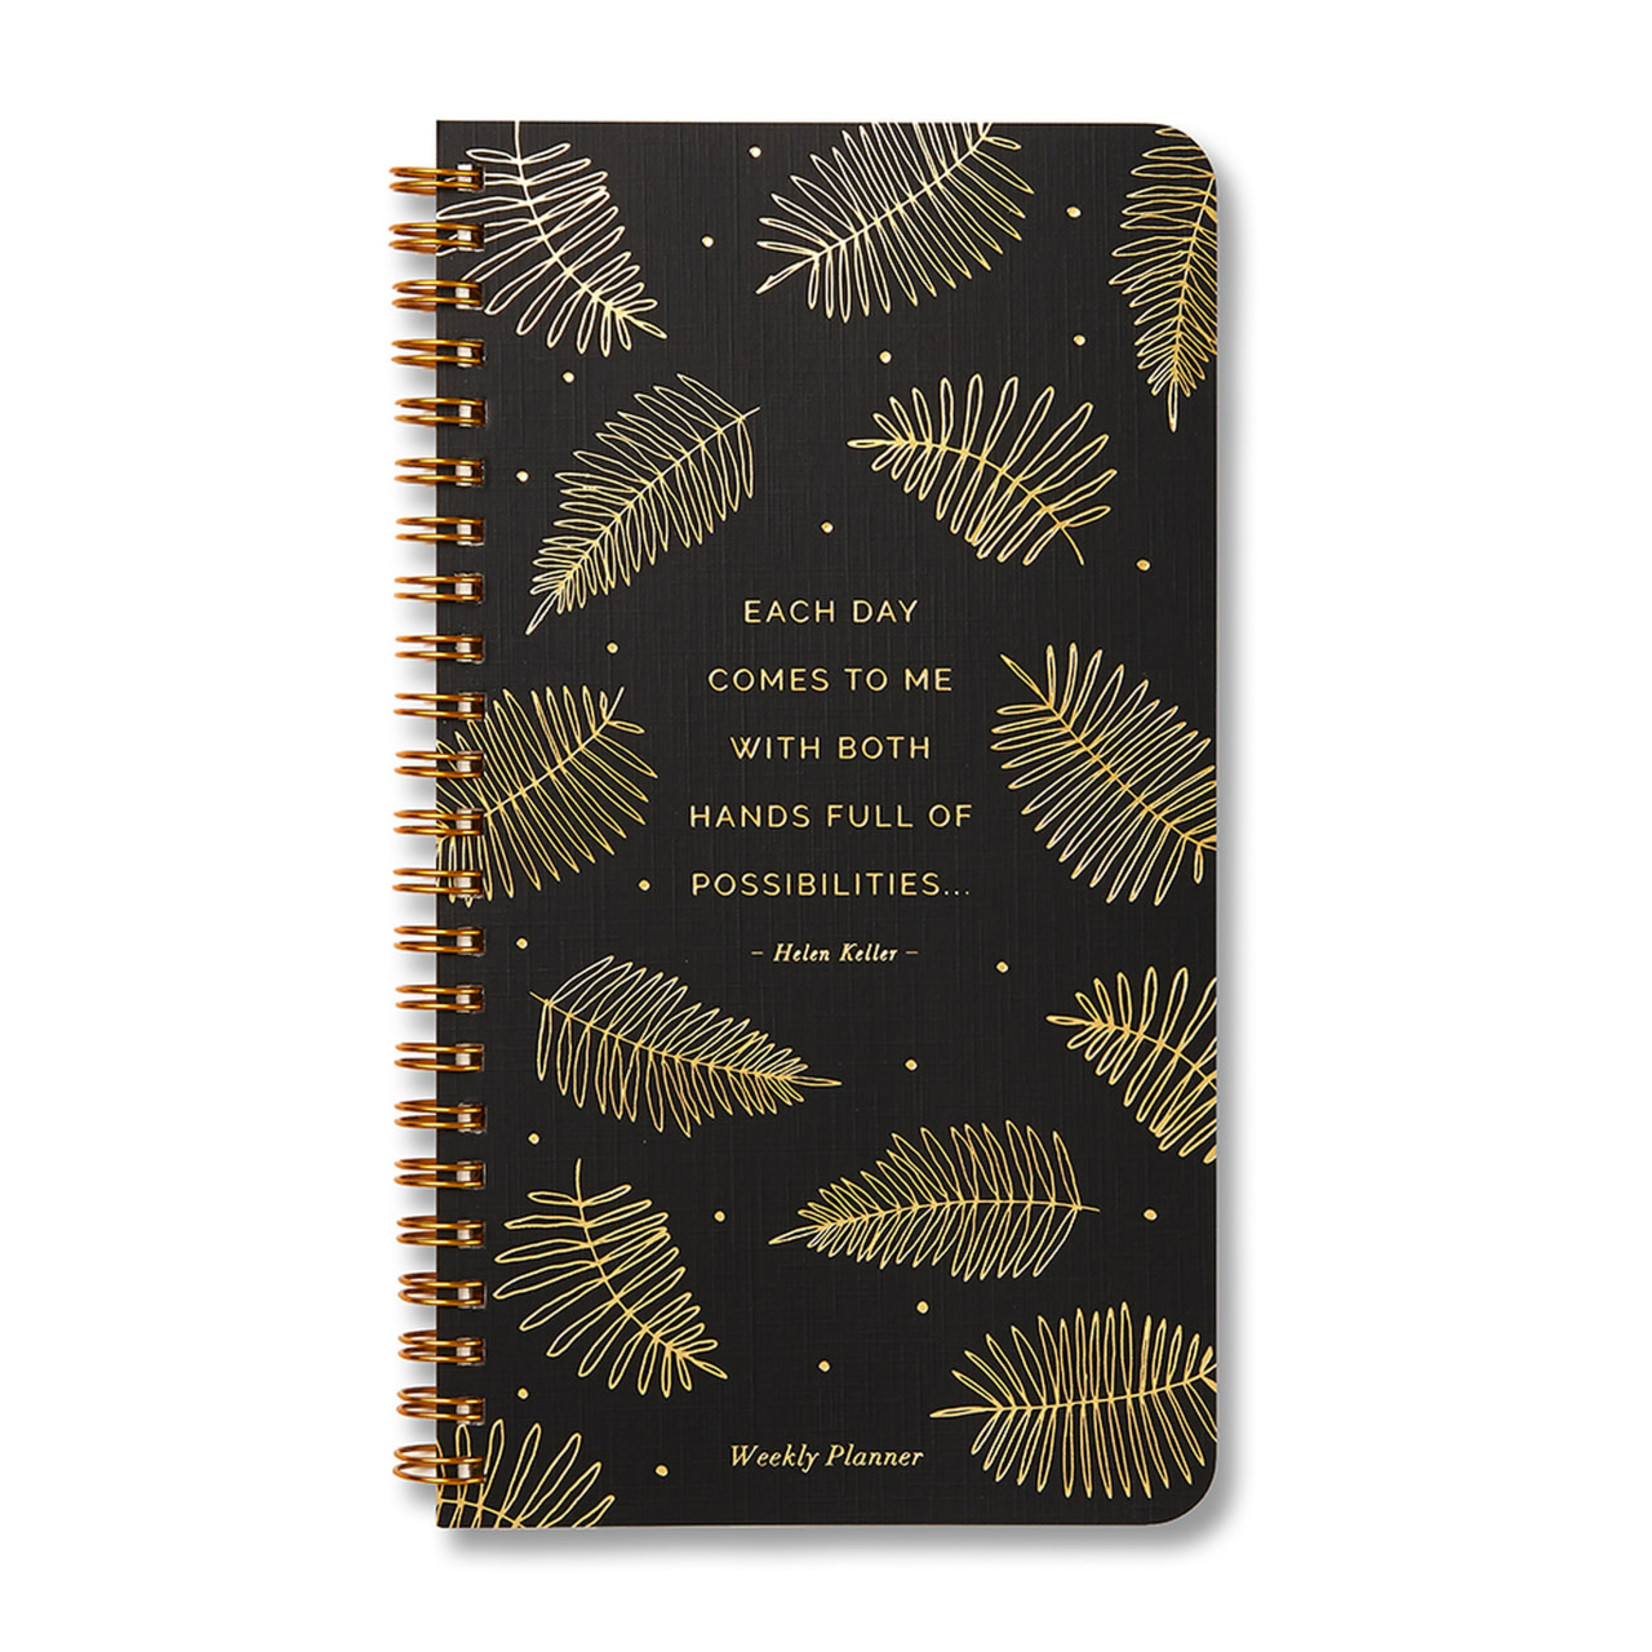 WEEKLY PLANNER - EACH DAY COMES TO ME WITH BOTH HANDS